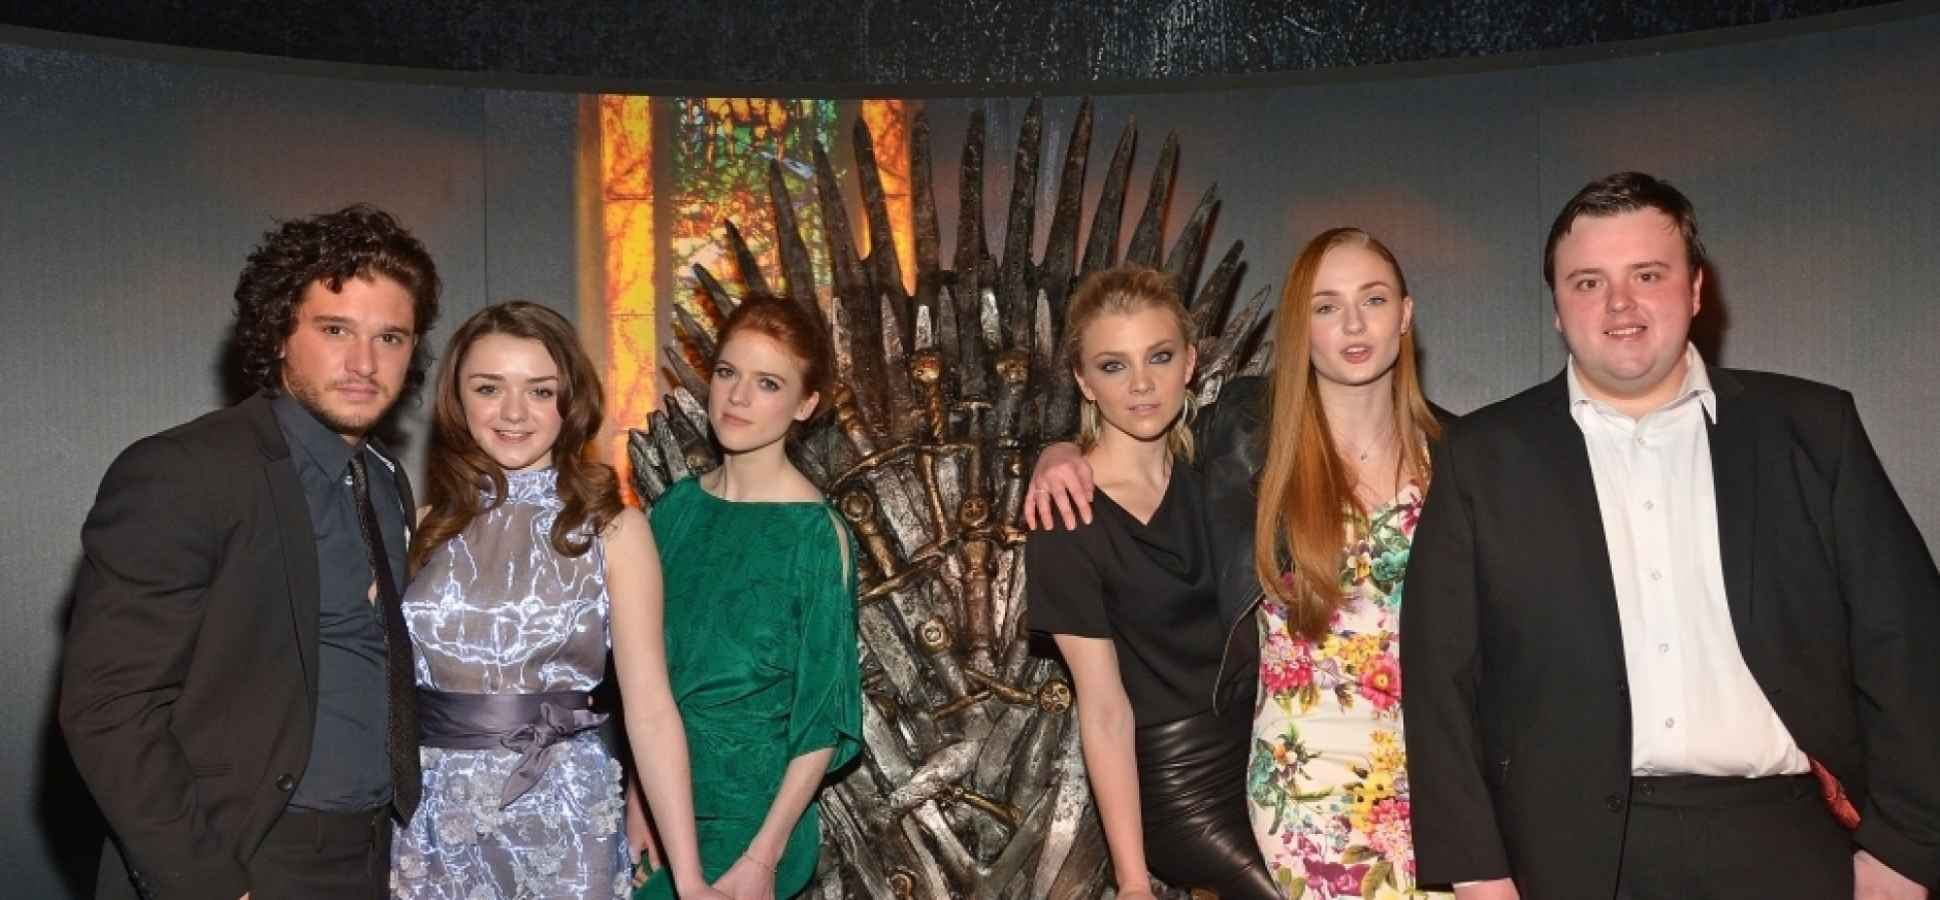 5 Incredible Leadership Lessons You Can Learn From Game of Thrones